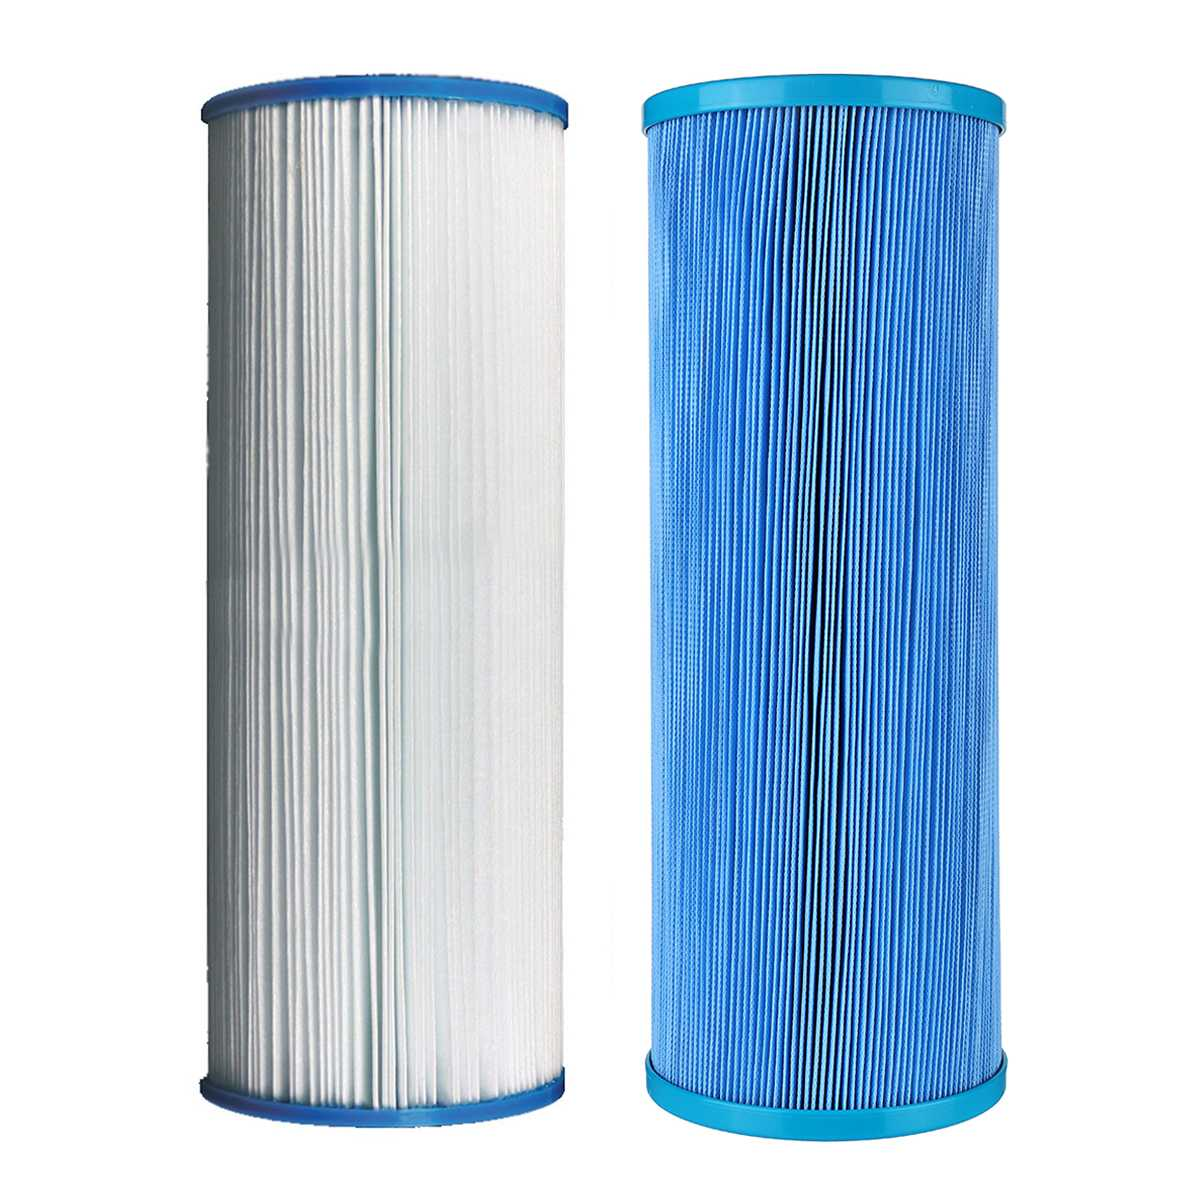 2 Types Filtration Replacement Pool Spa Filter C-4326 Hot Tub Cartridge Filters PRB25IN Beachcomber Artesian Filters Accessory